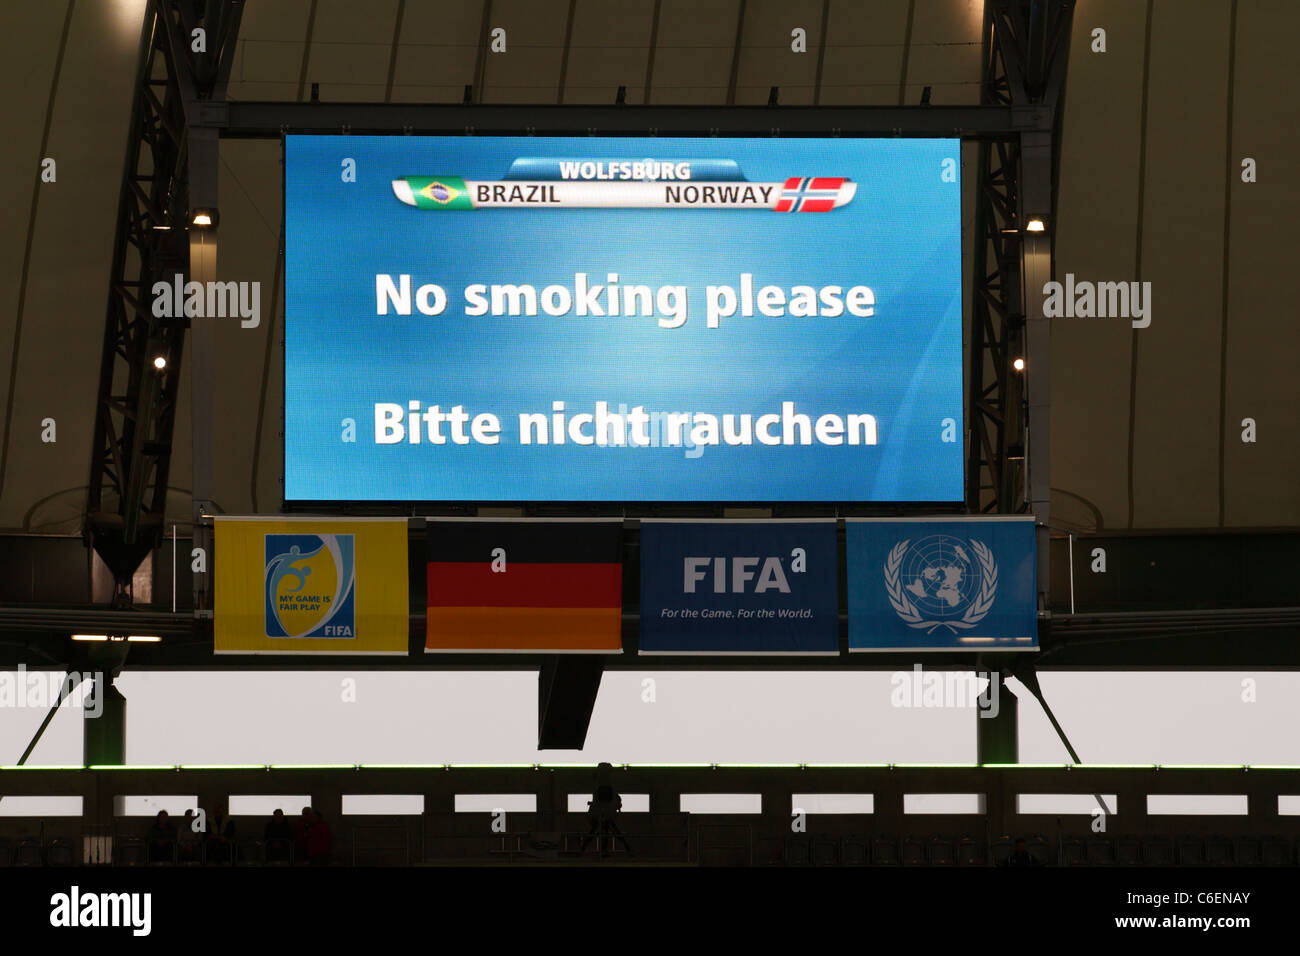 A video display indicates No Smoking at a 2011 Women's World Cup soccer match at Arena Im Allerpark in Wolfsburg, - Stock Image